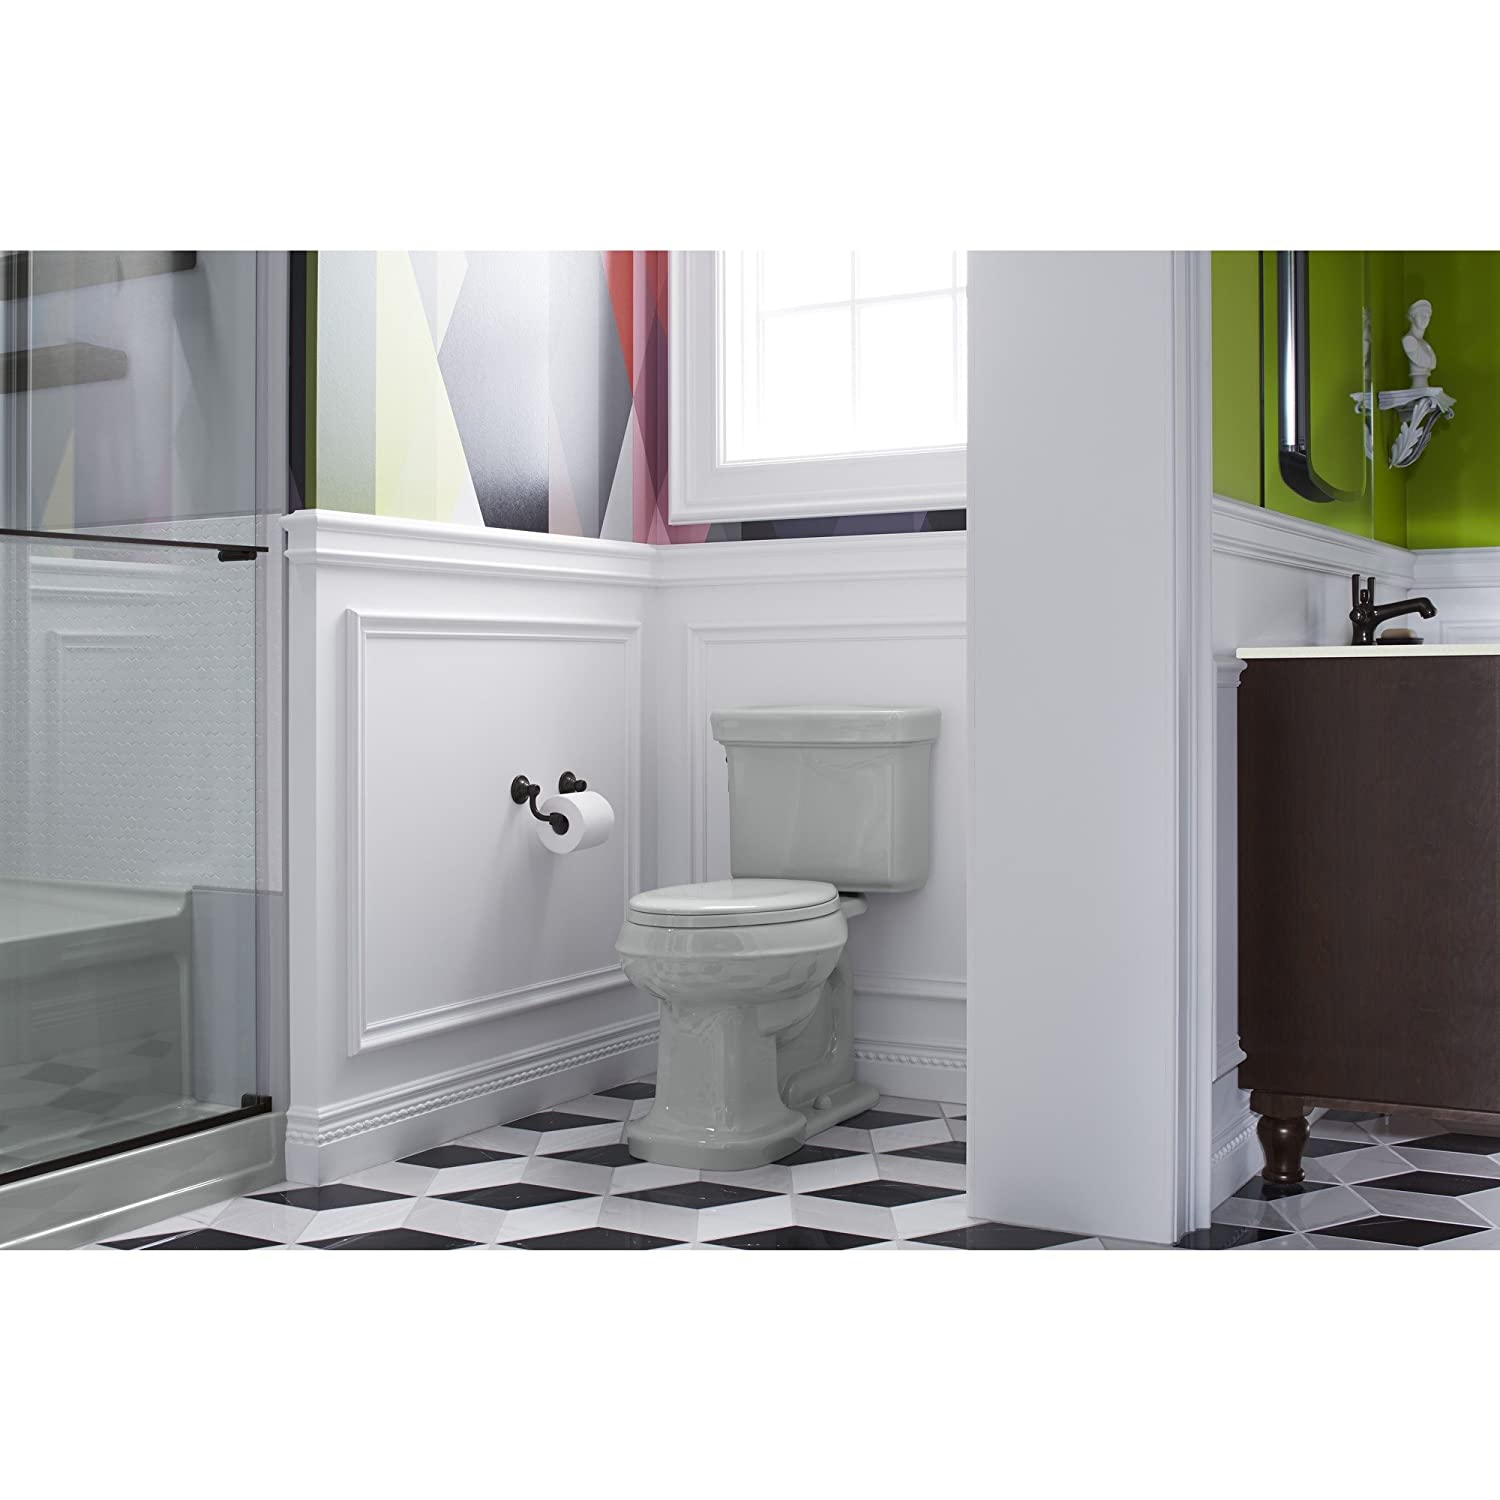 Biscuit Kohler K 4659 96 Bancroft With Quick Release Hinges Elongated Toilet Seat